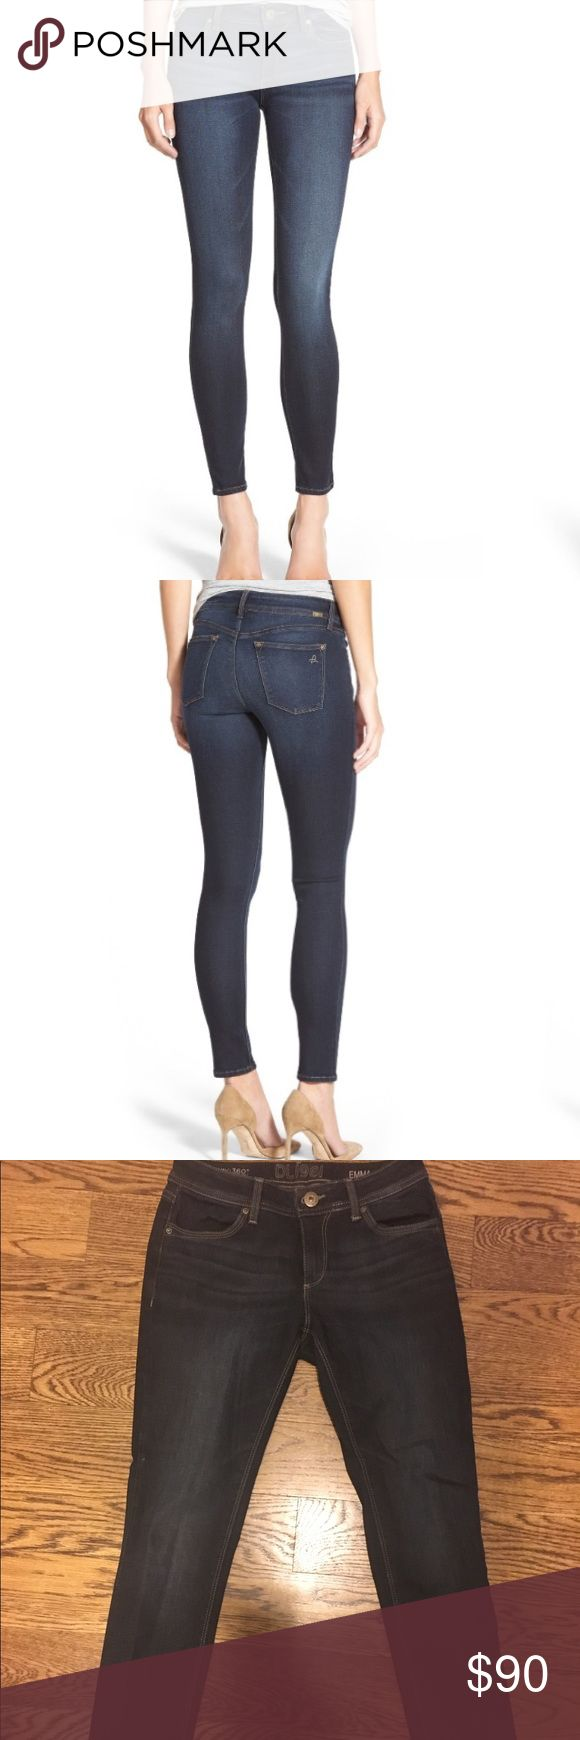 """DL Emma denim power legging Only been worn once great condition!An ultra-saturated indigo rinse colors figure-sculpting denim leggings with classic five-pocket styling and subtle fading through the thighs. 29"""" inseam; 9 1/2"""" leg opening; 8 1/4"""" front rise; 12 1/2"""" back rise (size 29) Zip fly with button closure Five-pocket style Dark dye may transfer to lighter materials 64% Tencel® lyocell, 34% polyester, 2% spandex Machine wash cold, line dry Imported t.b.d. DL1961 Jeans Skinny"""